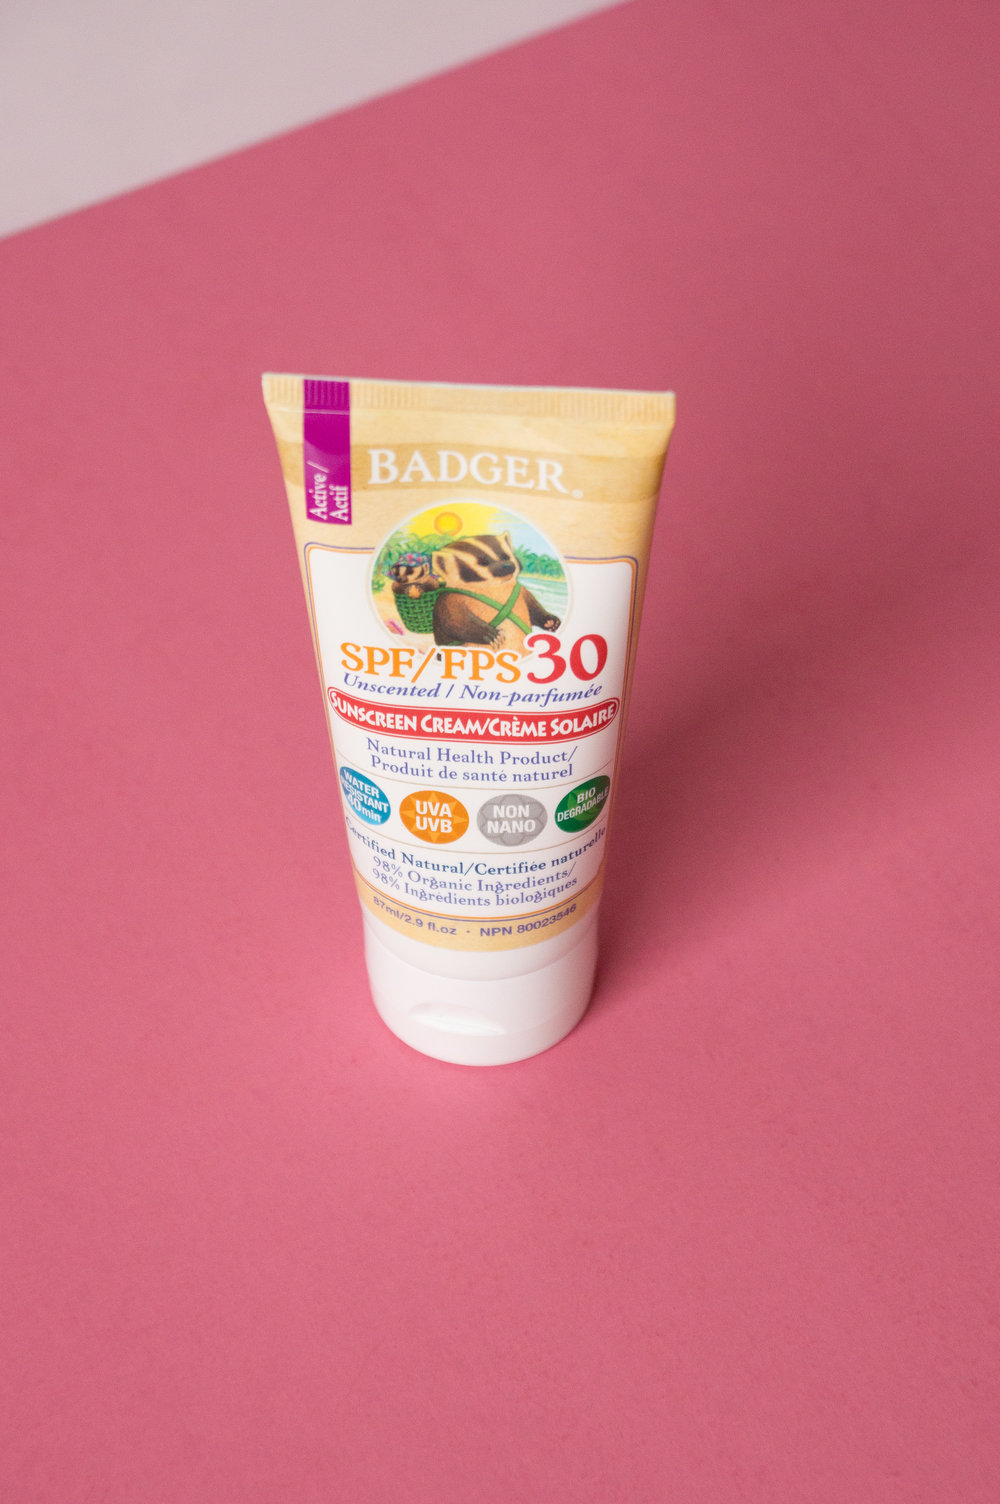 Badger SPF 30 Unscented Sunscreen Review